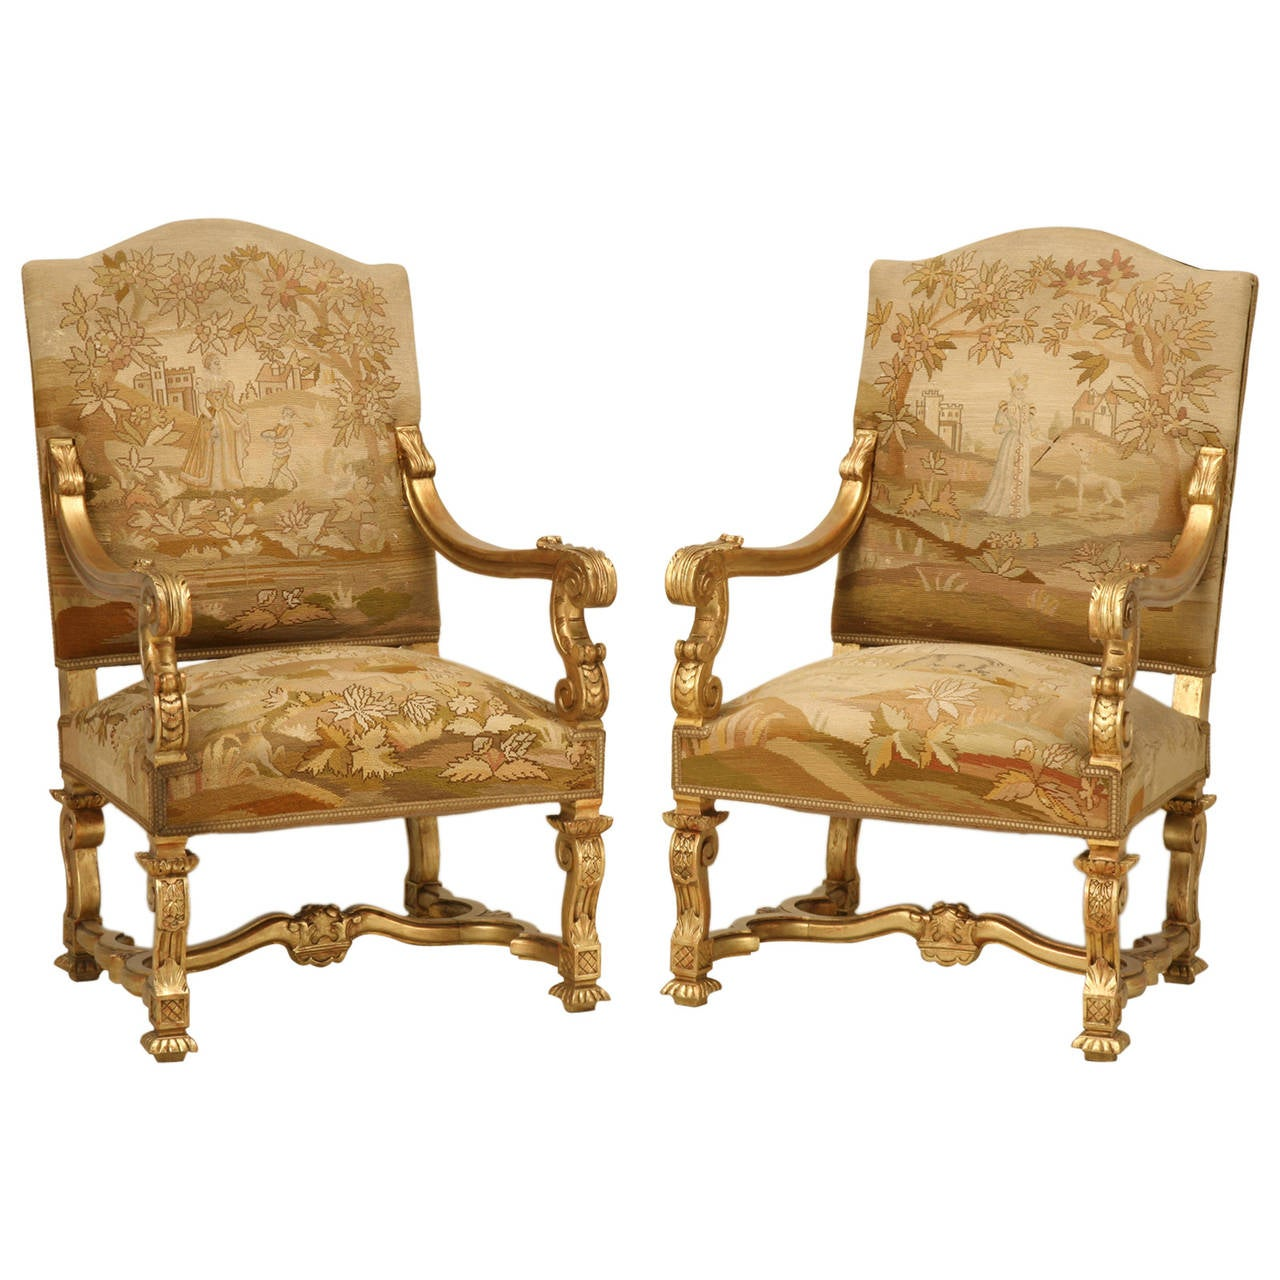 Antique french gilded throne chairs circa 1900 for sale for Antique desk chair